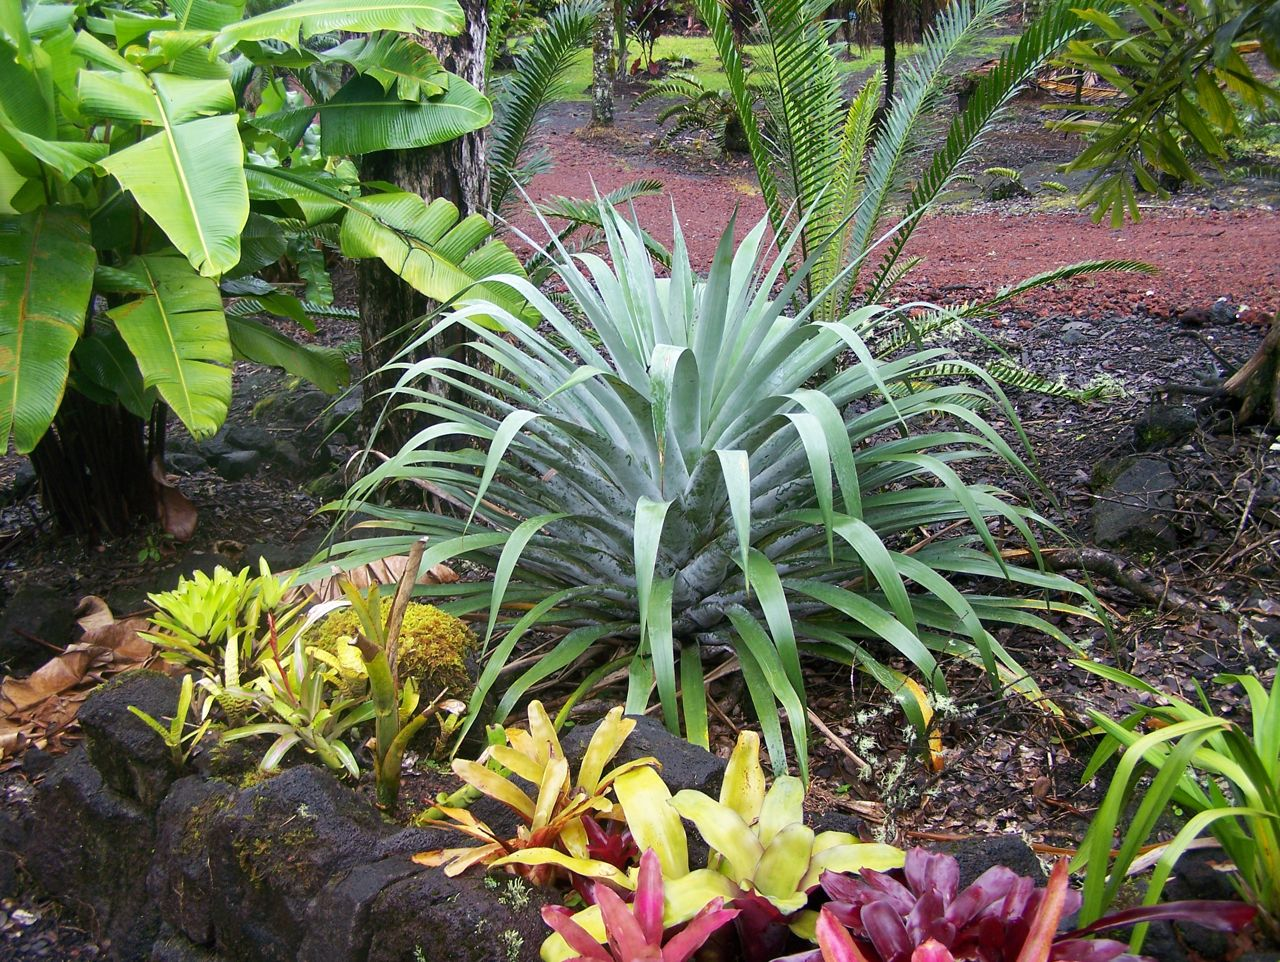 Cool Looking Plants Wierdest Coolest Bromeliads Tropical Looking Plants